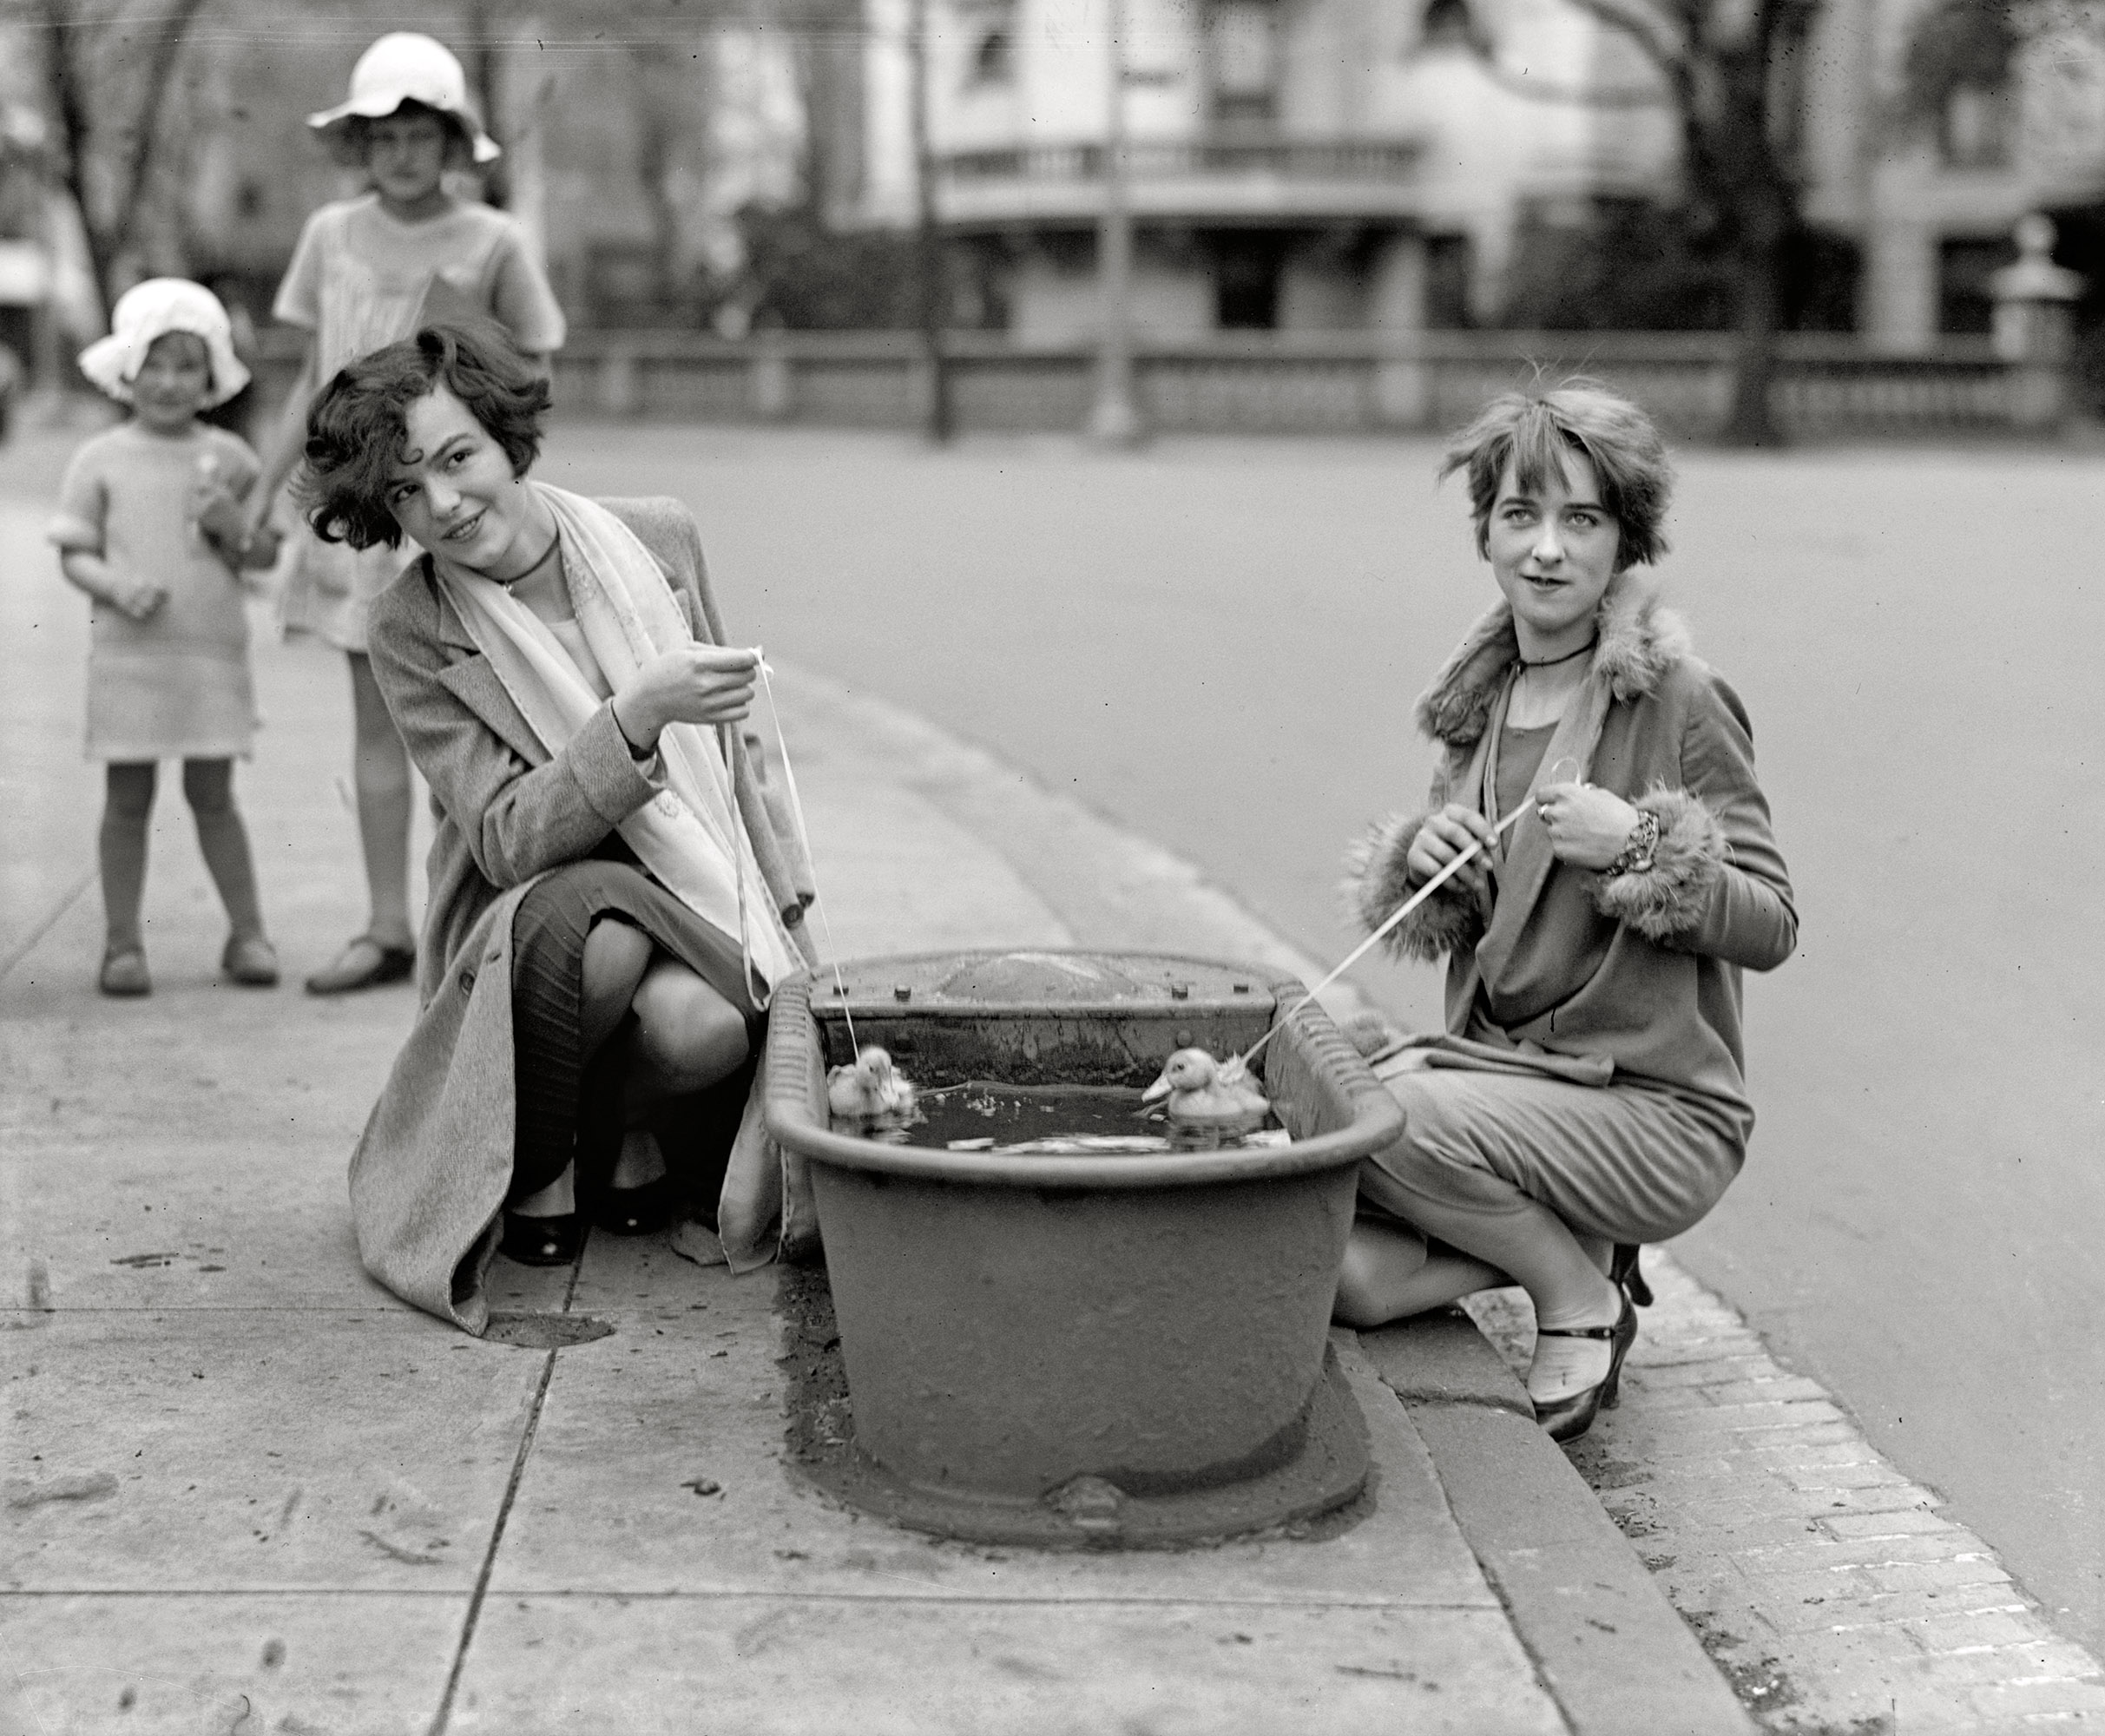 April 21, 1927.  Do ducks swim? Misses Eugenia Dunbar and Mary Moose.  The main focus here is of course the horse trough, once a common item of street furniture in many big cities.